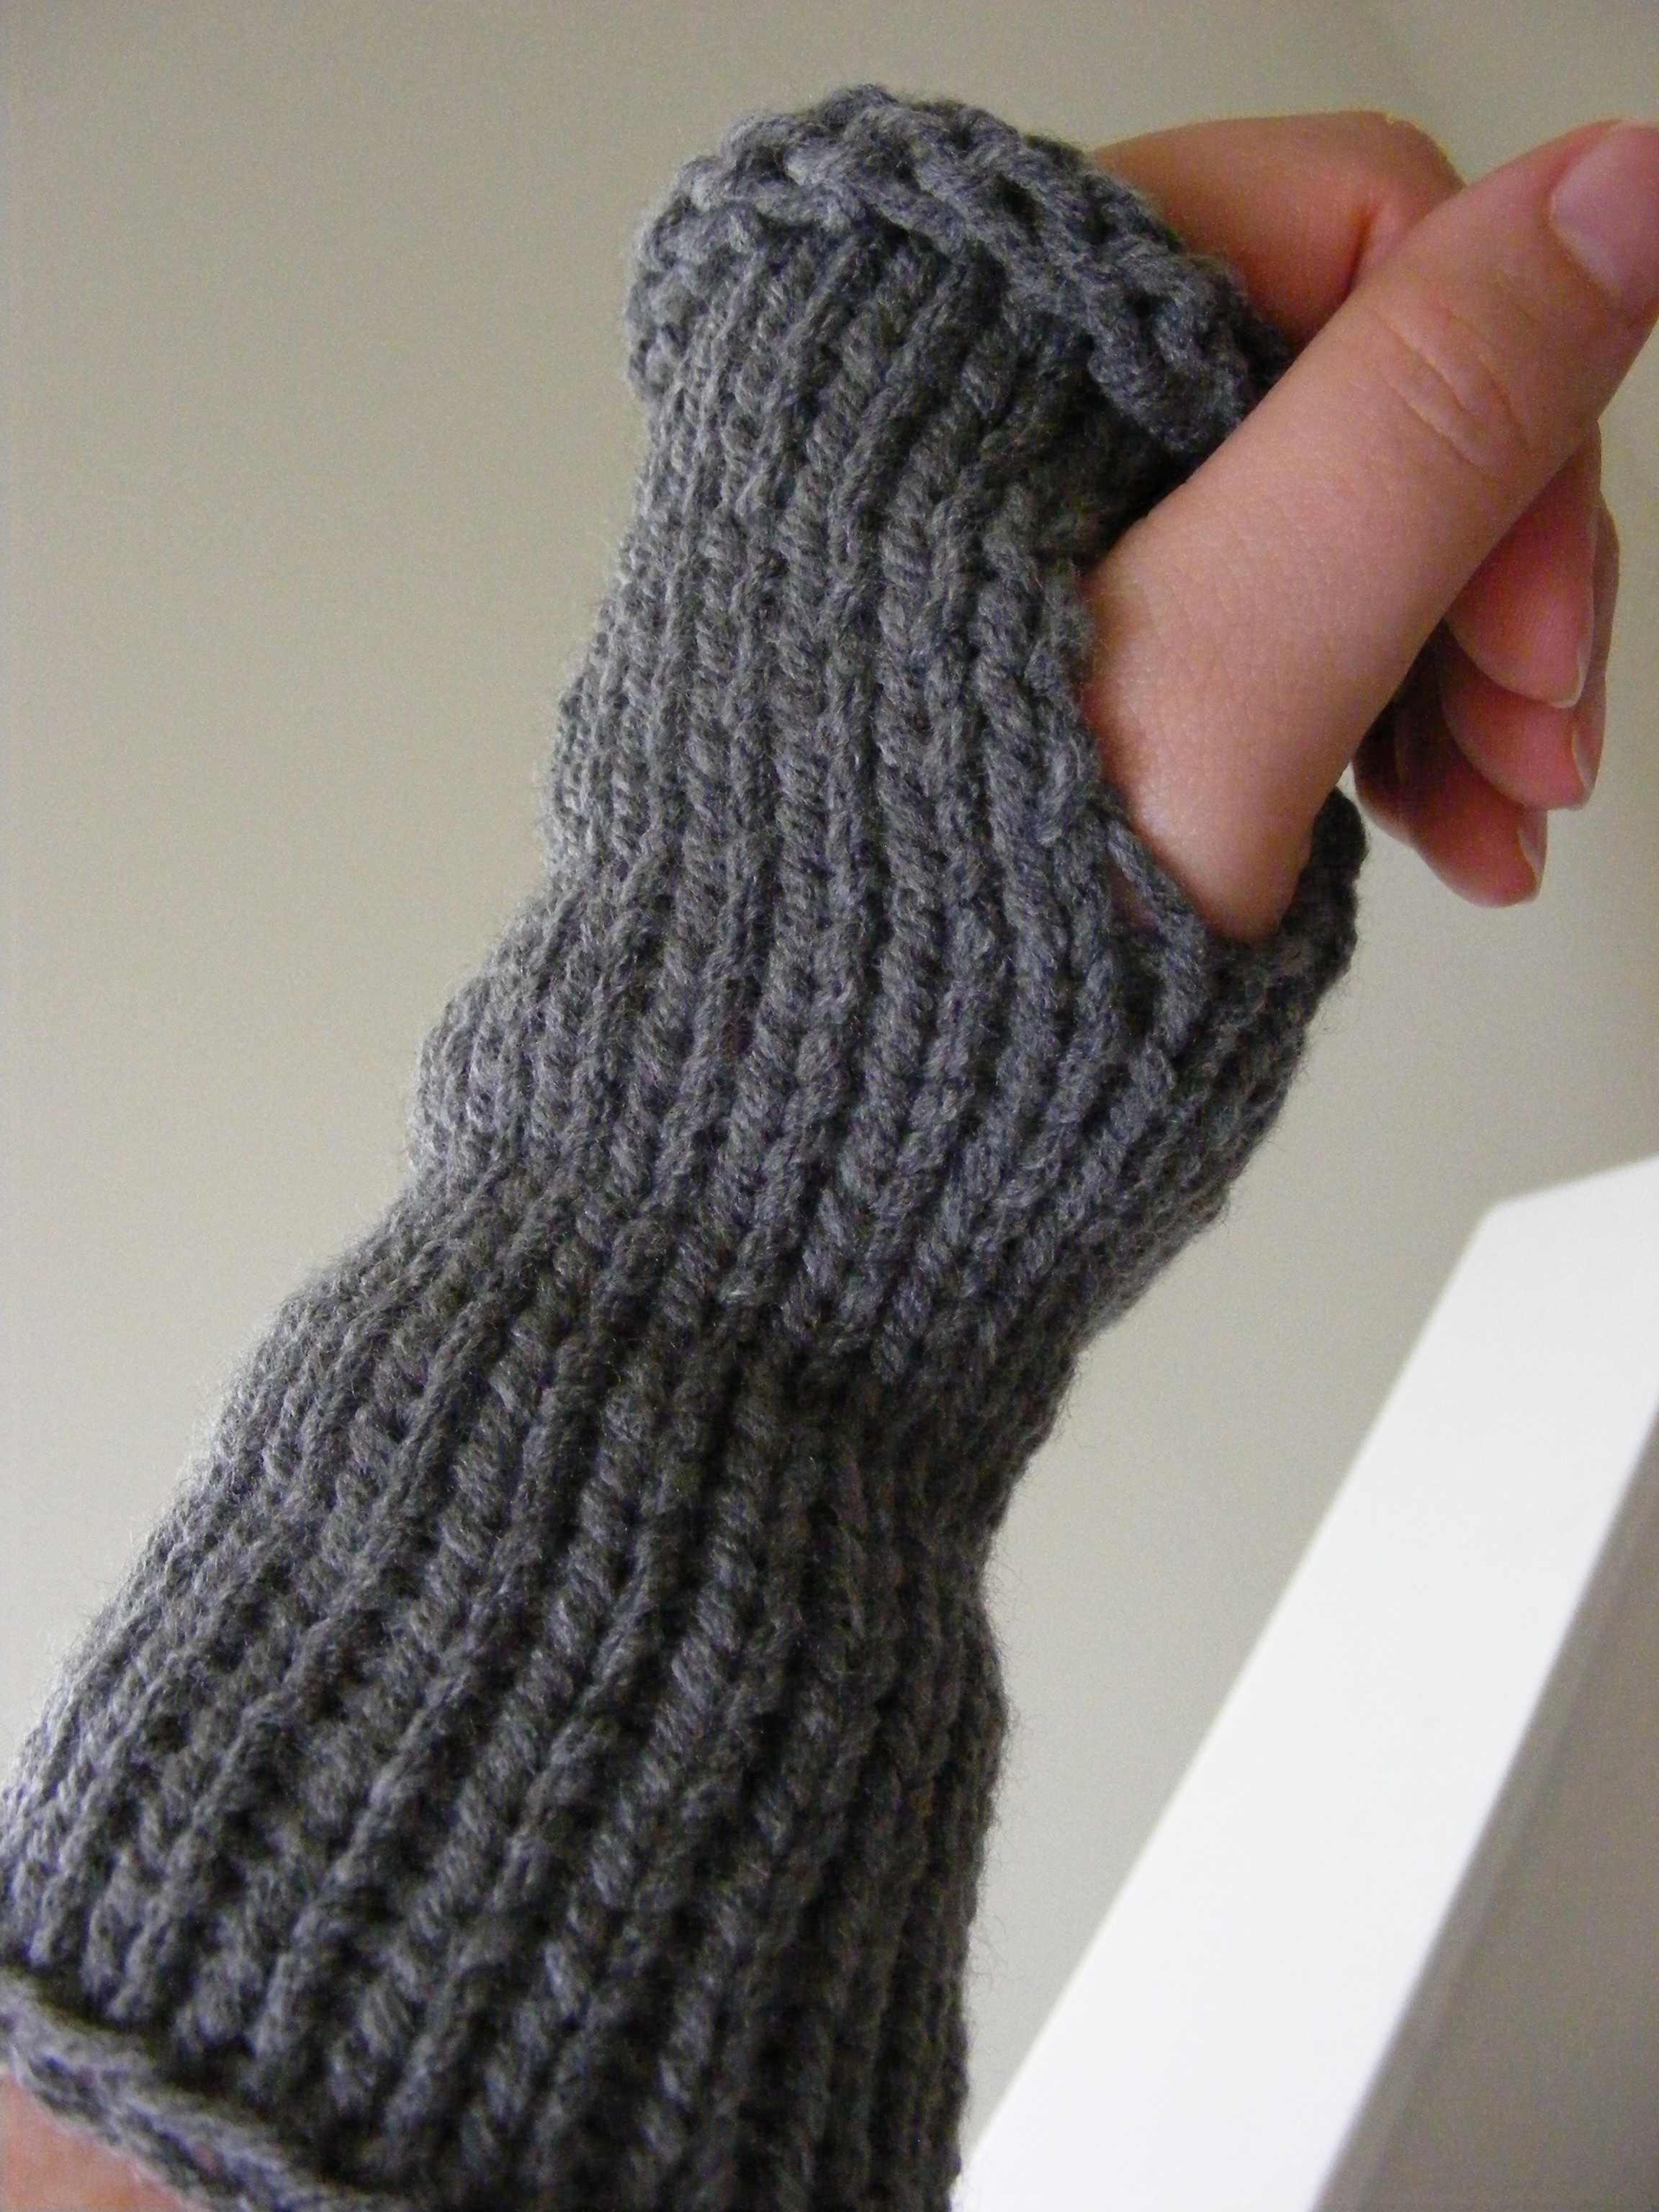 Loom Knit Fingerless Gloves Pattern : Top Down Wrist Warmer Pattern GretchKals Yarny Adventures